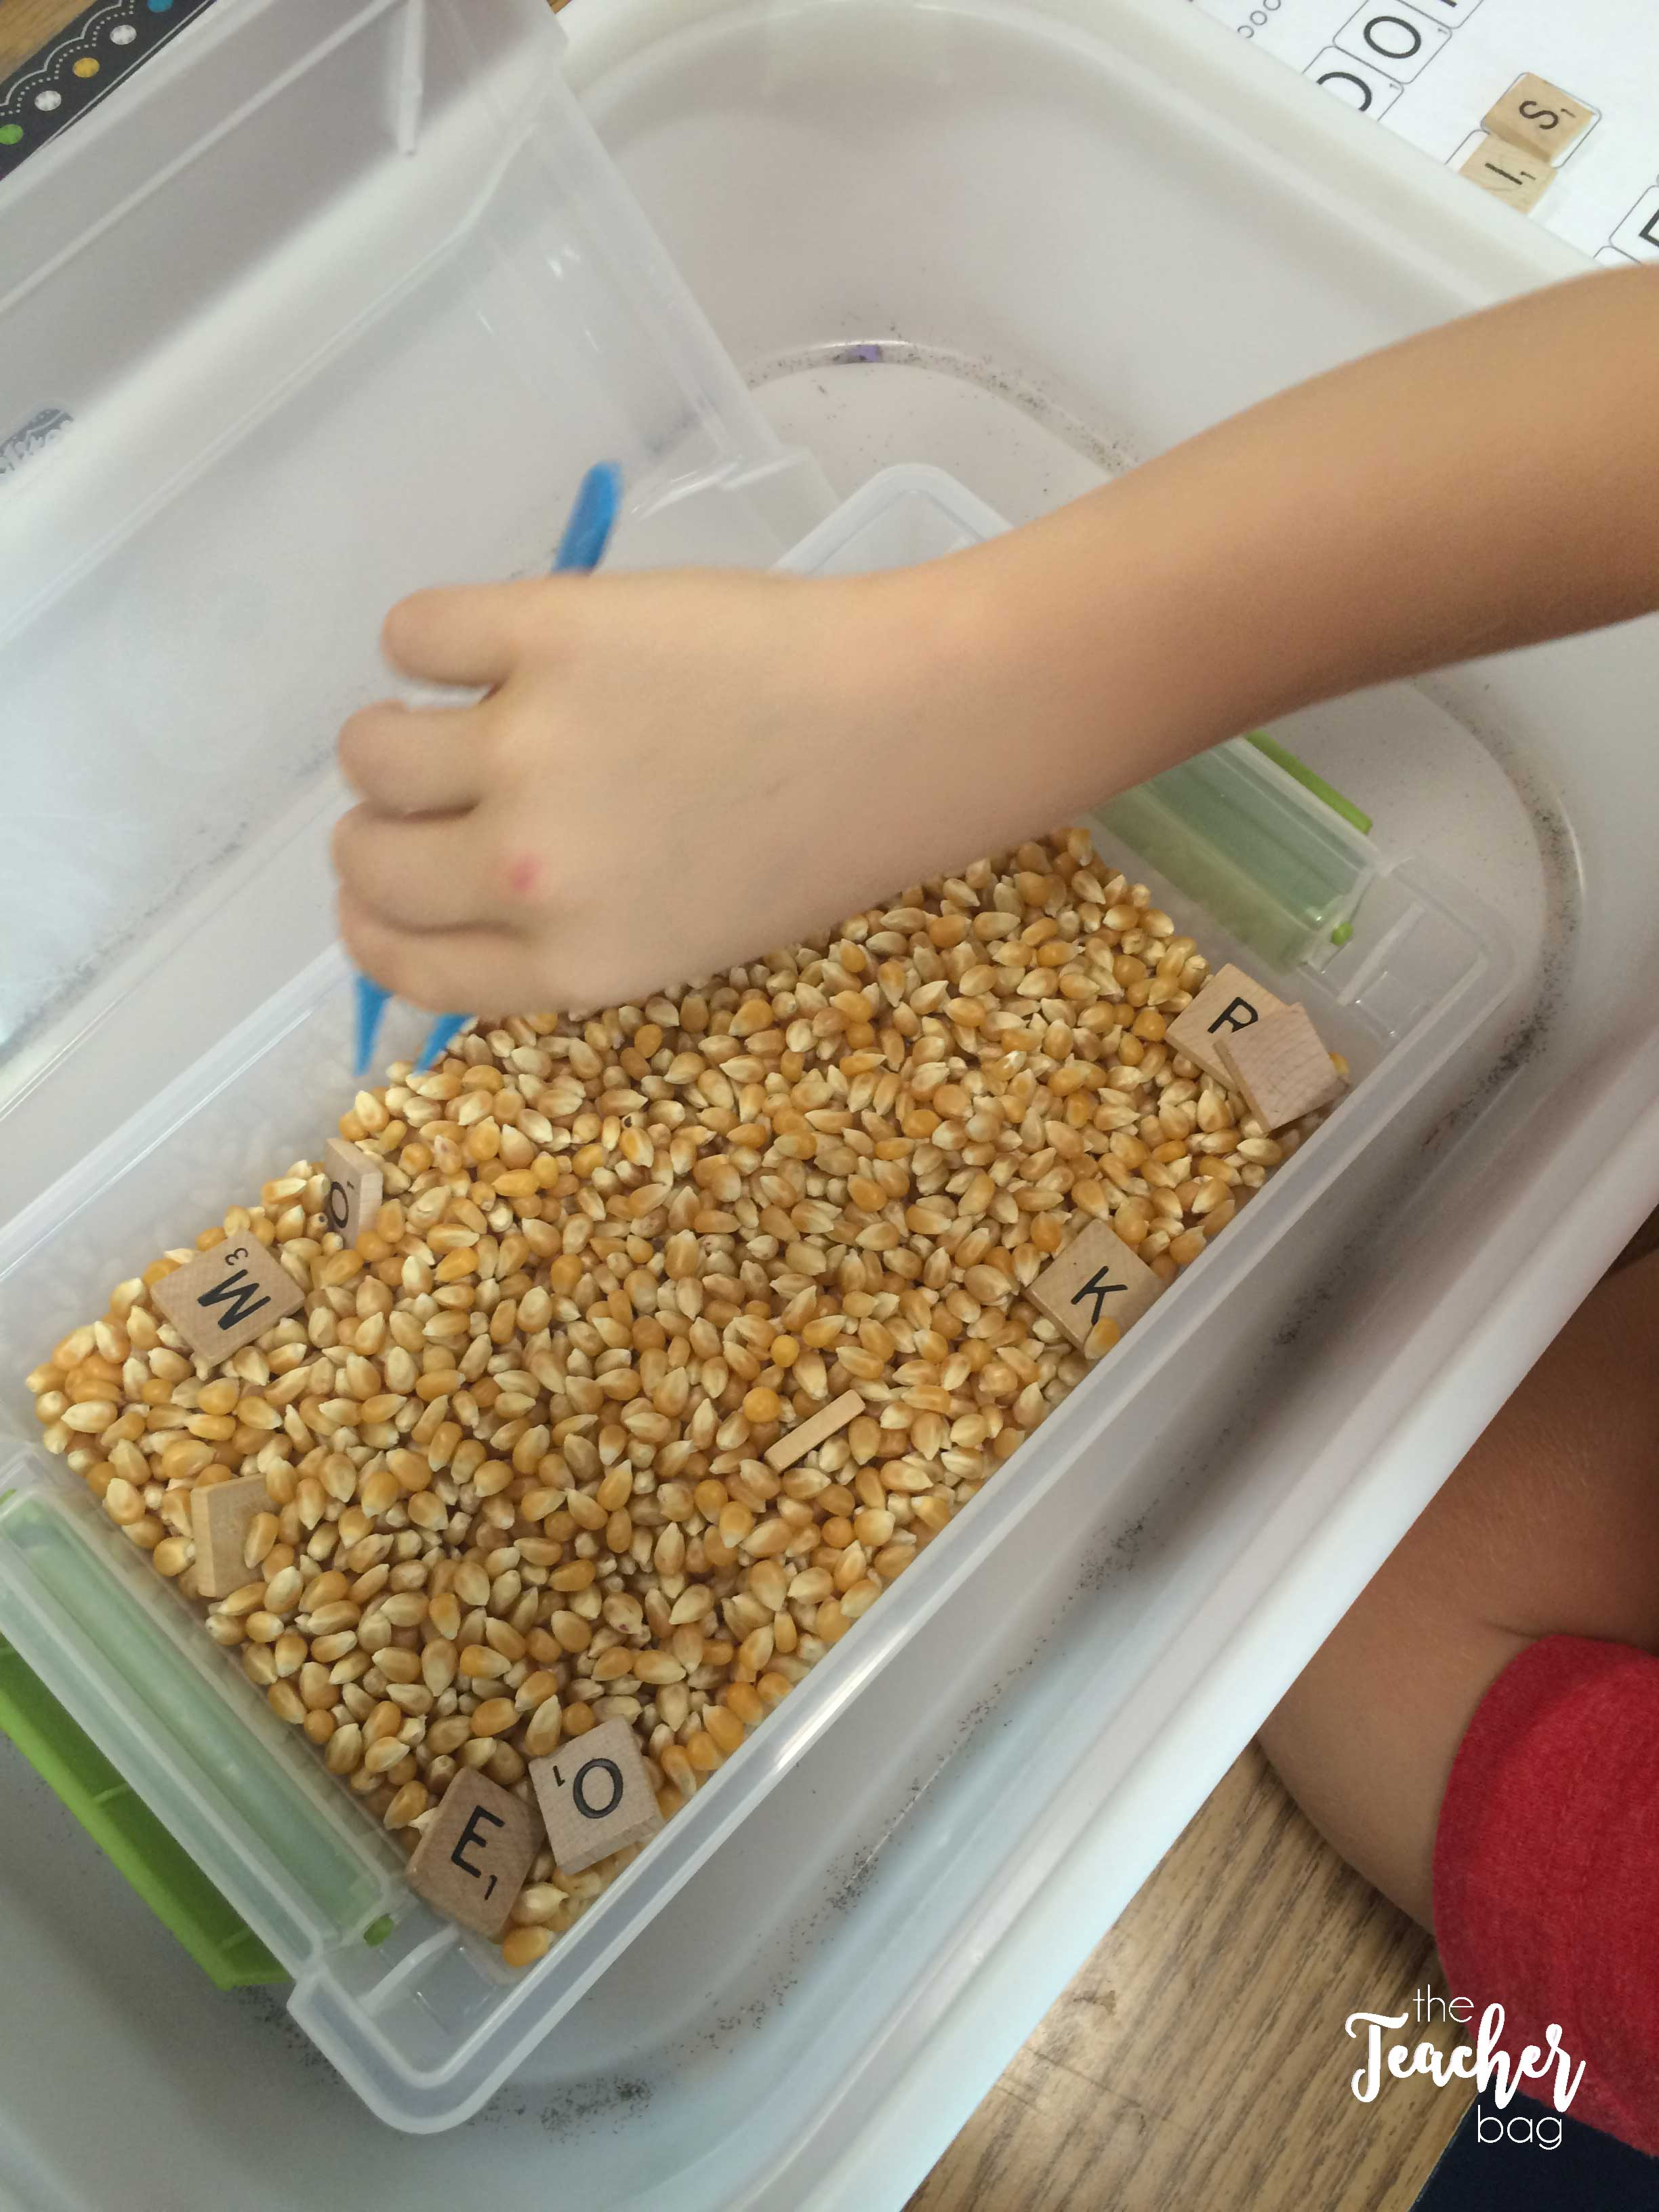 Use tweezers to search for scrabble tiles in popcorn. This helps to build fine motor skills.